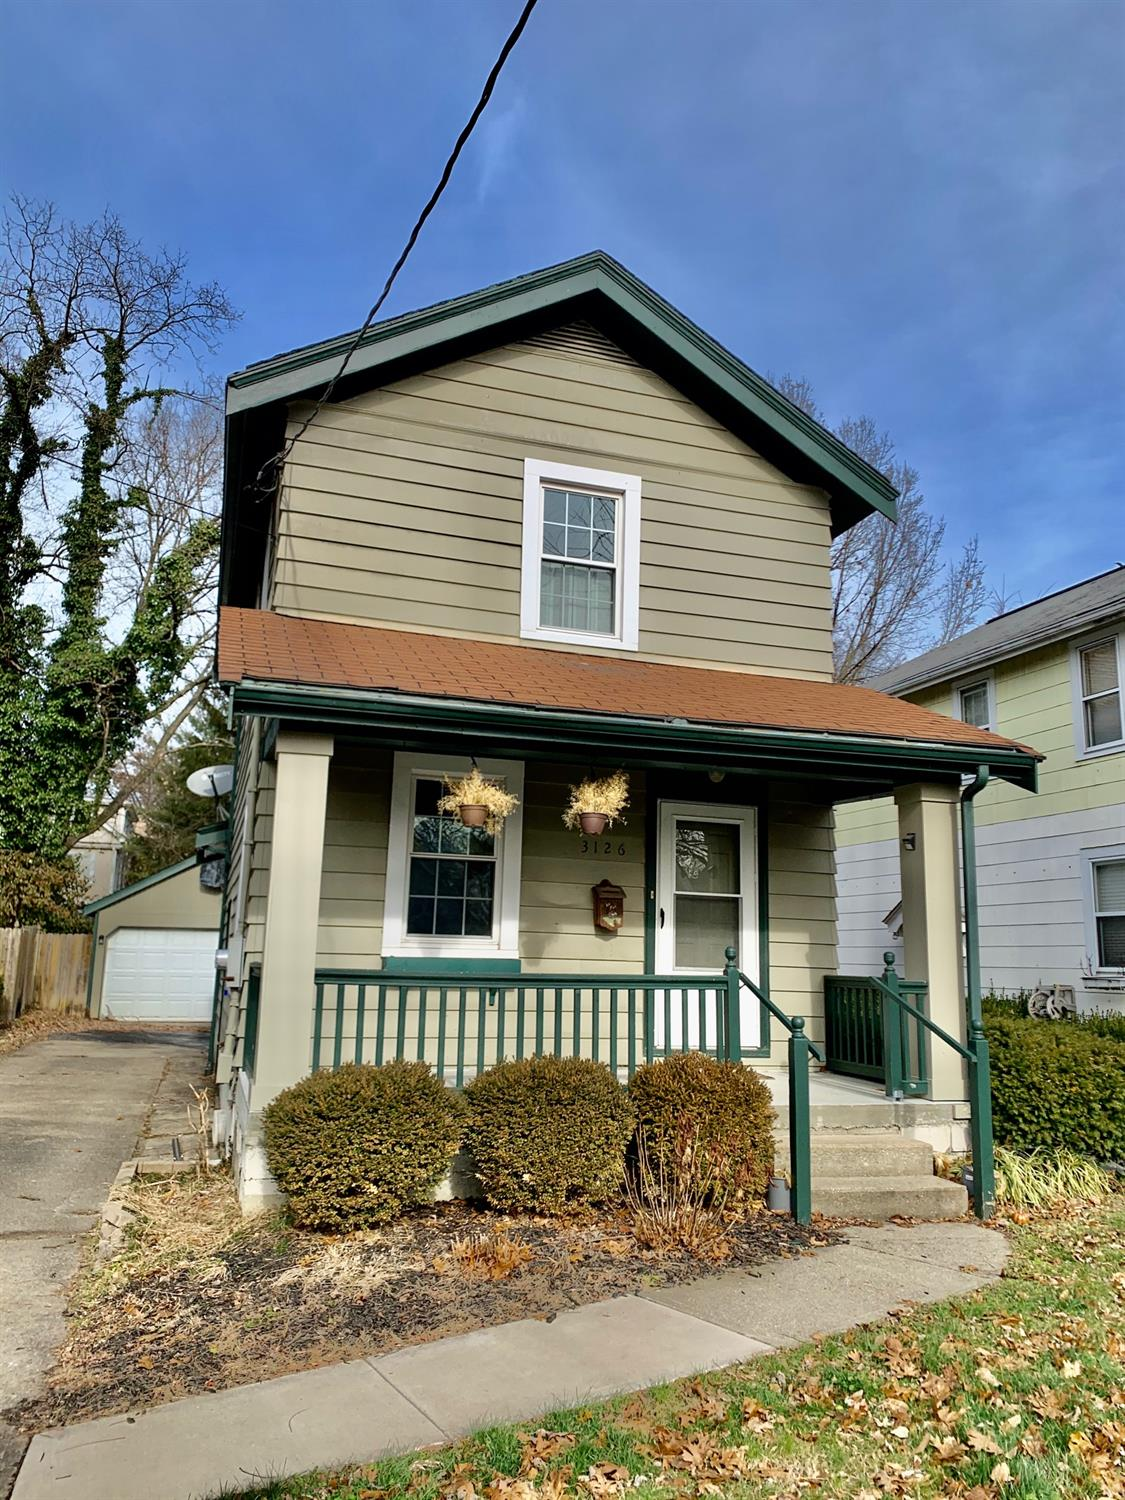 Photo 2 for 3126 Mapleleaf Ave Pleasant Ridge, OH 45213